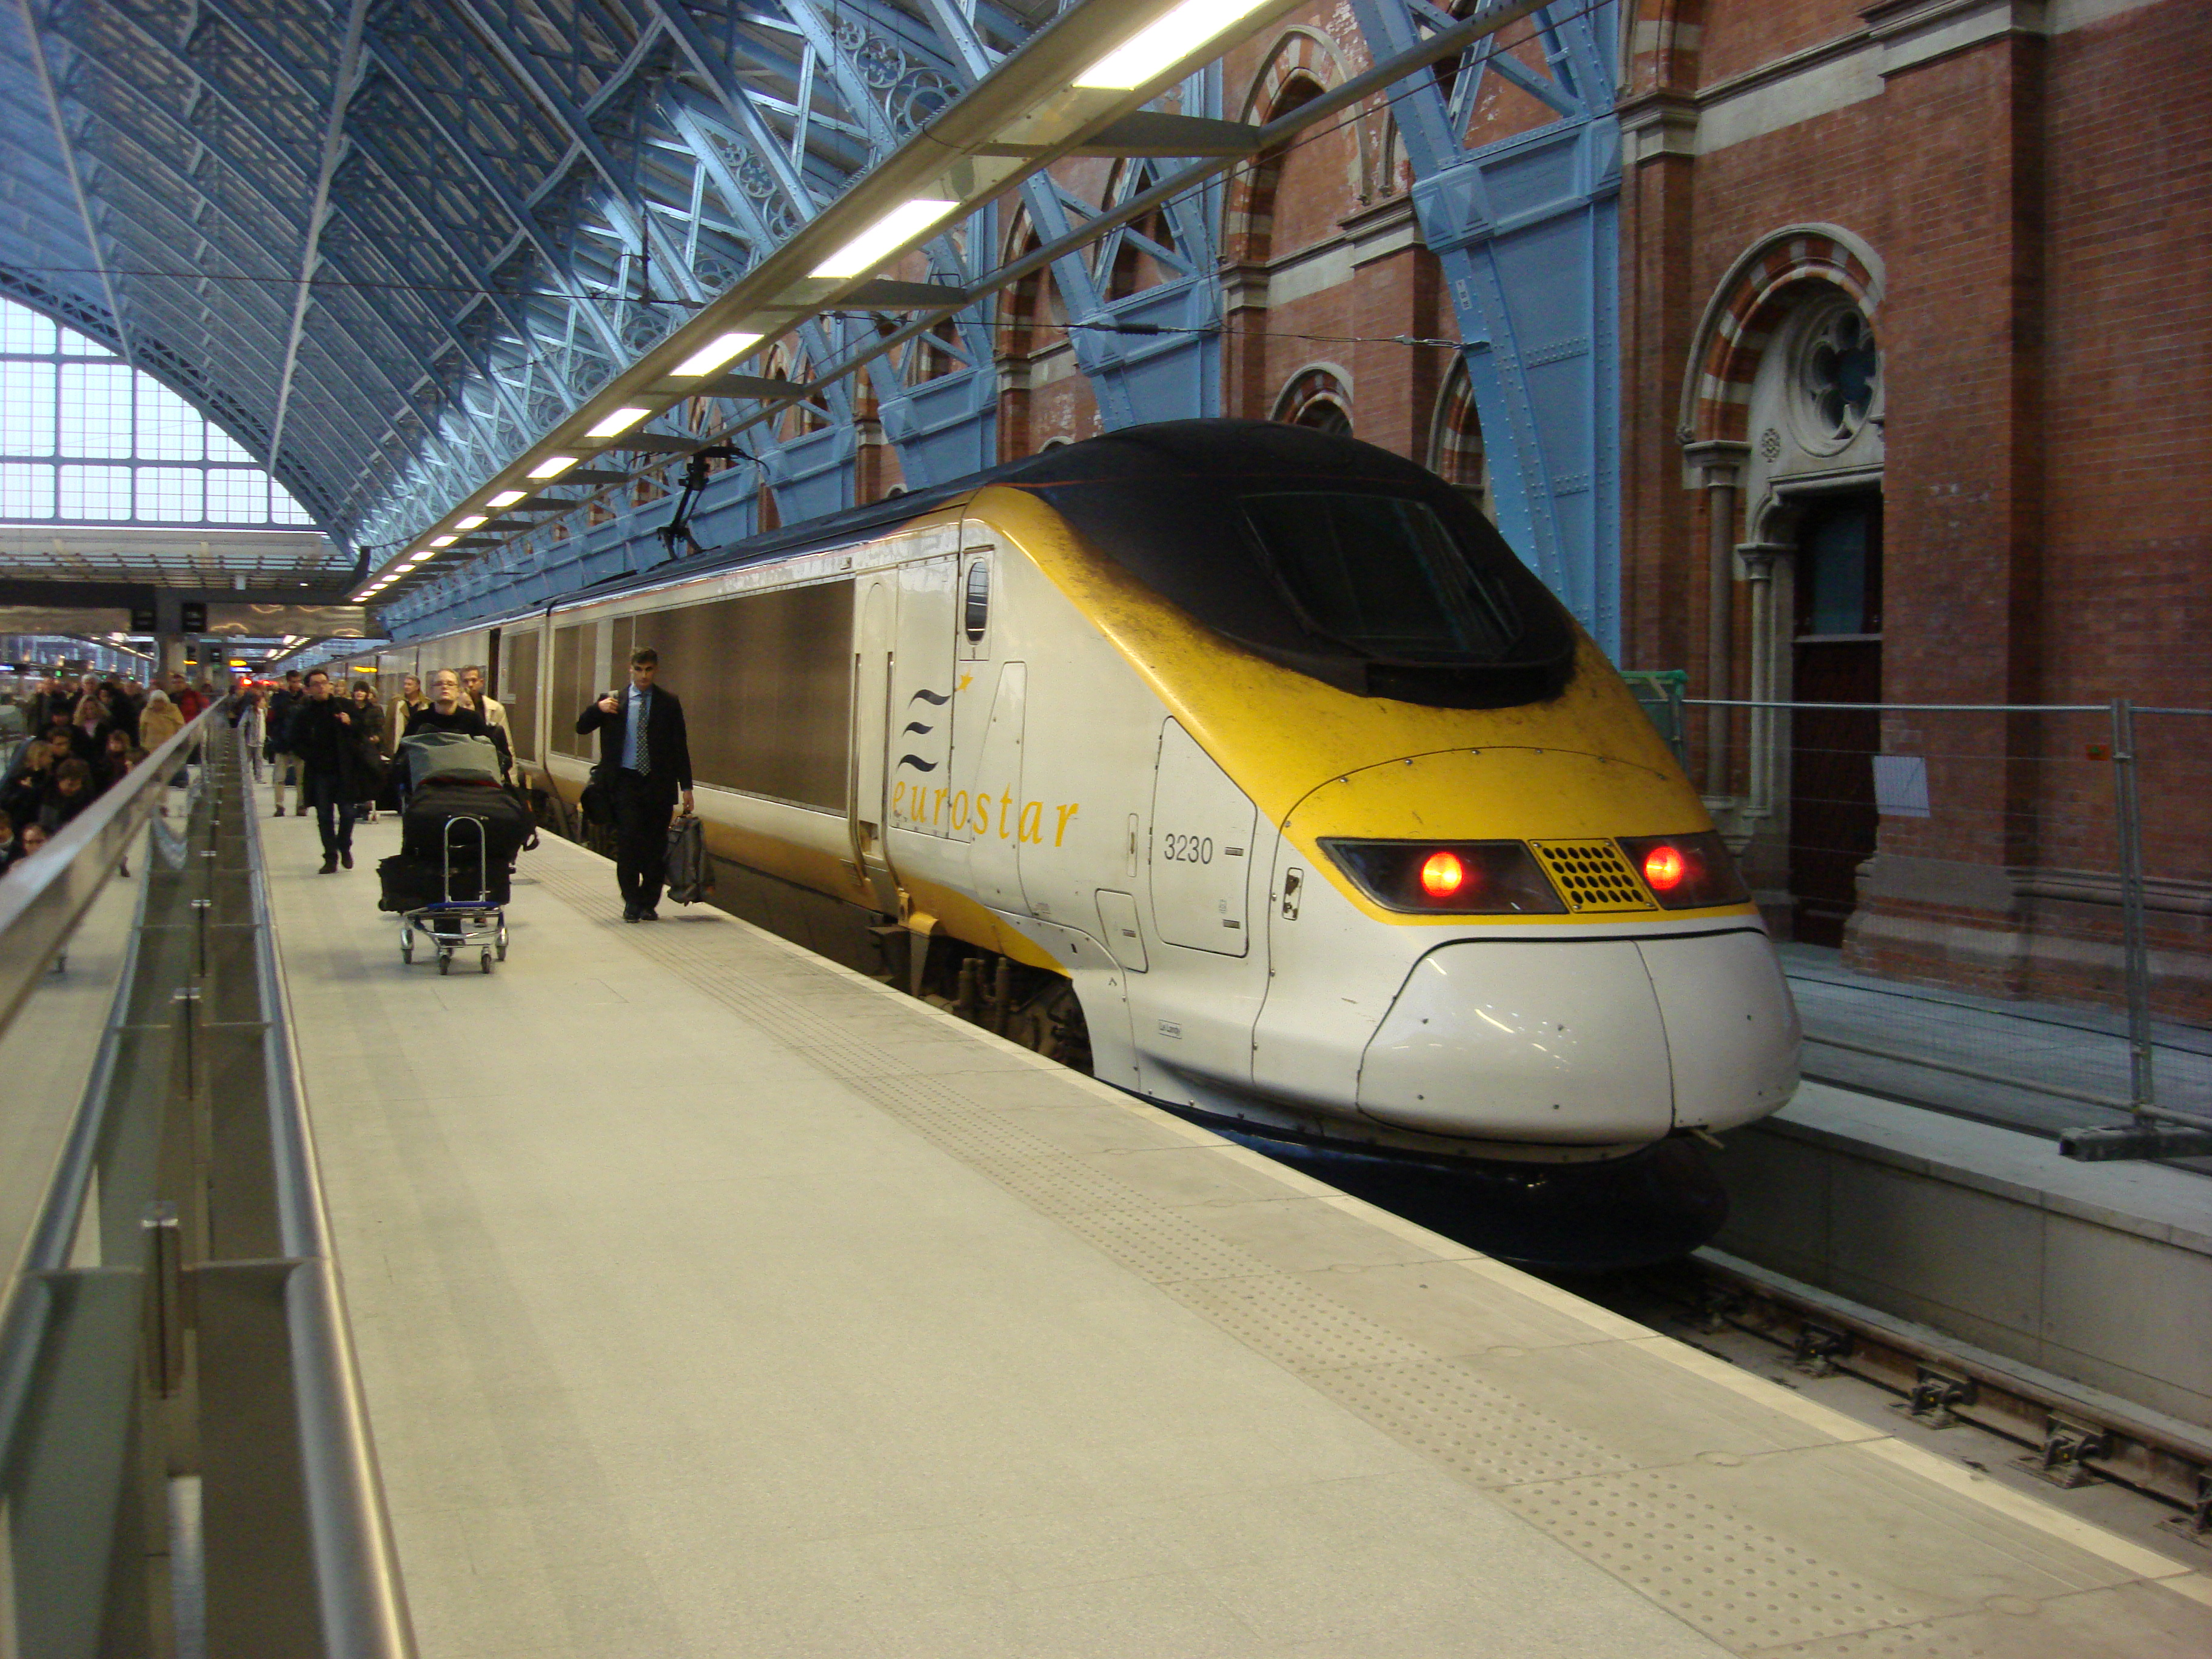 File:Eurostar at St Pancras railway station.jpg - Wikipedia, the ...